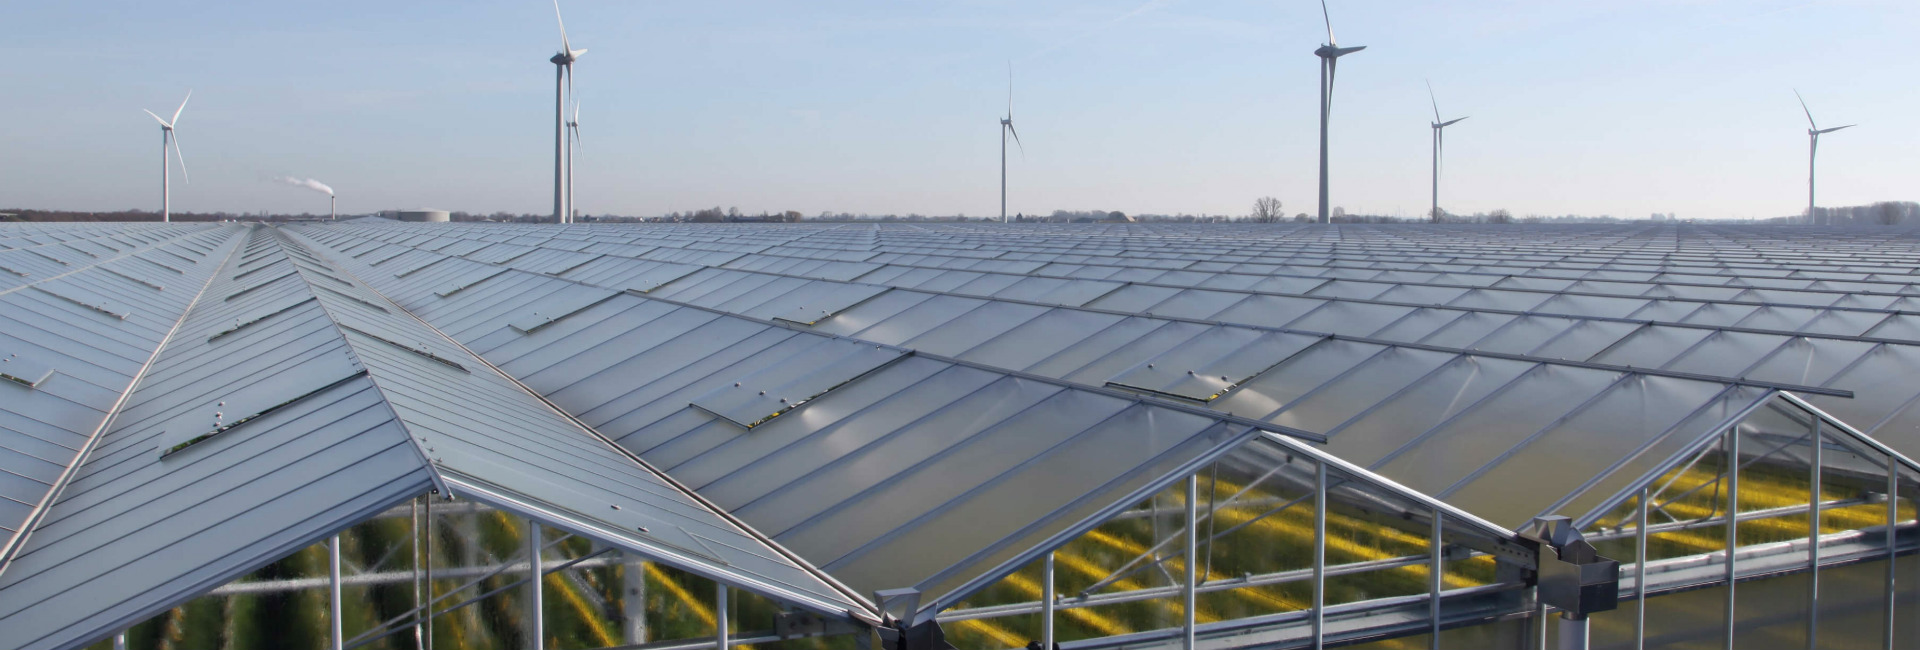 Aluminium greenhouse roof systems